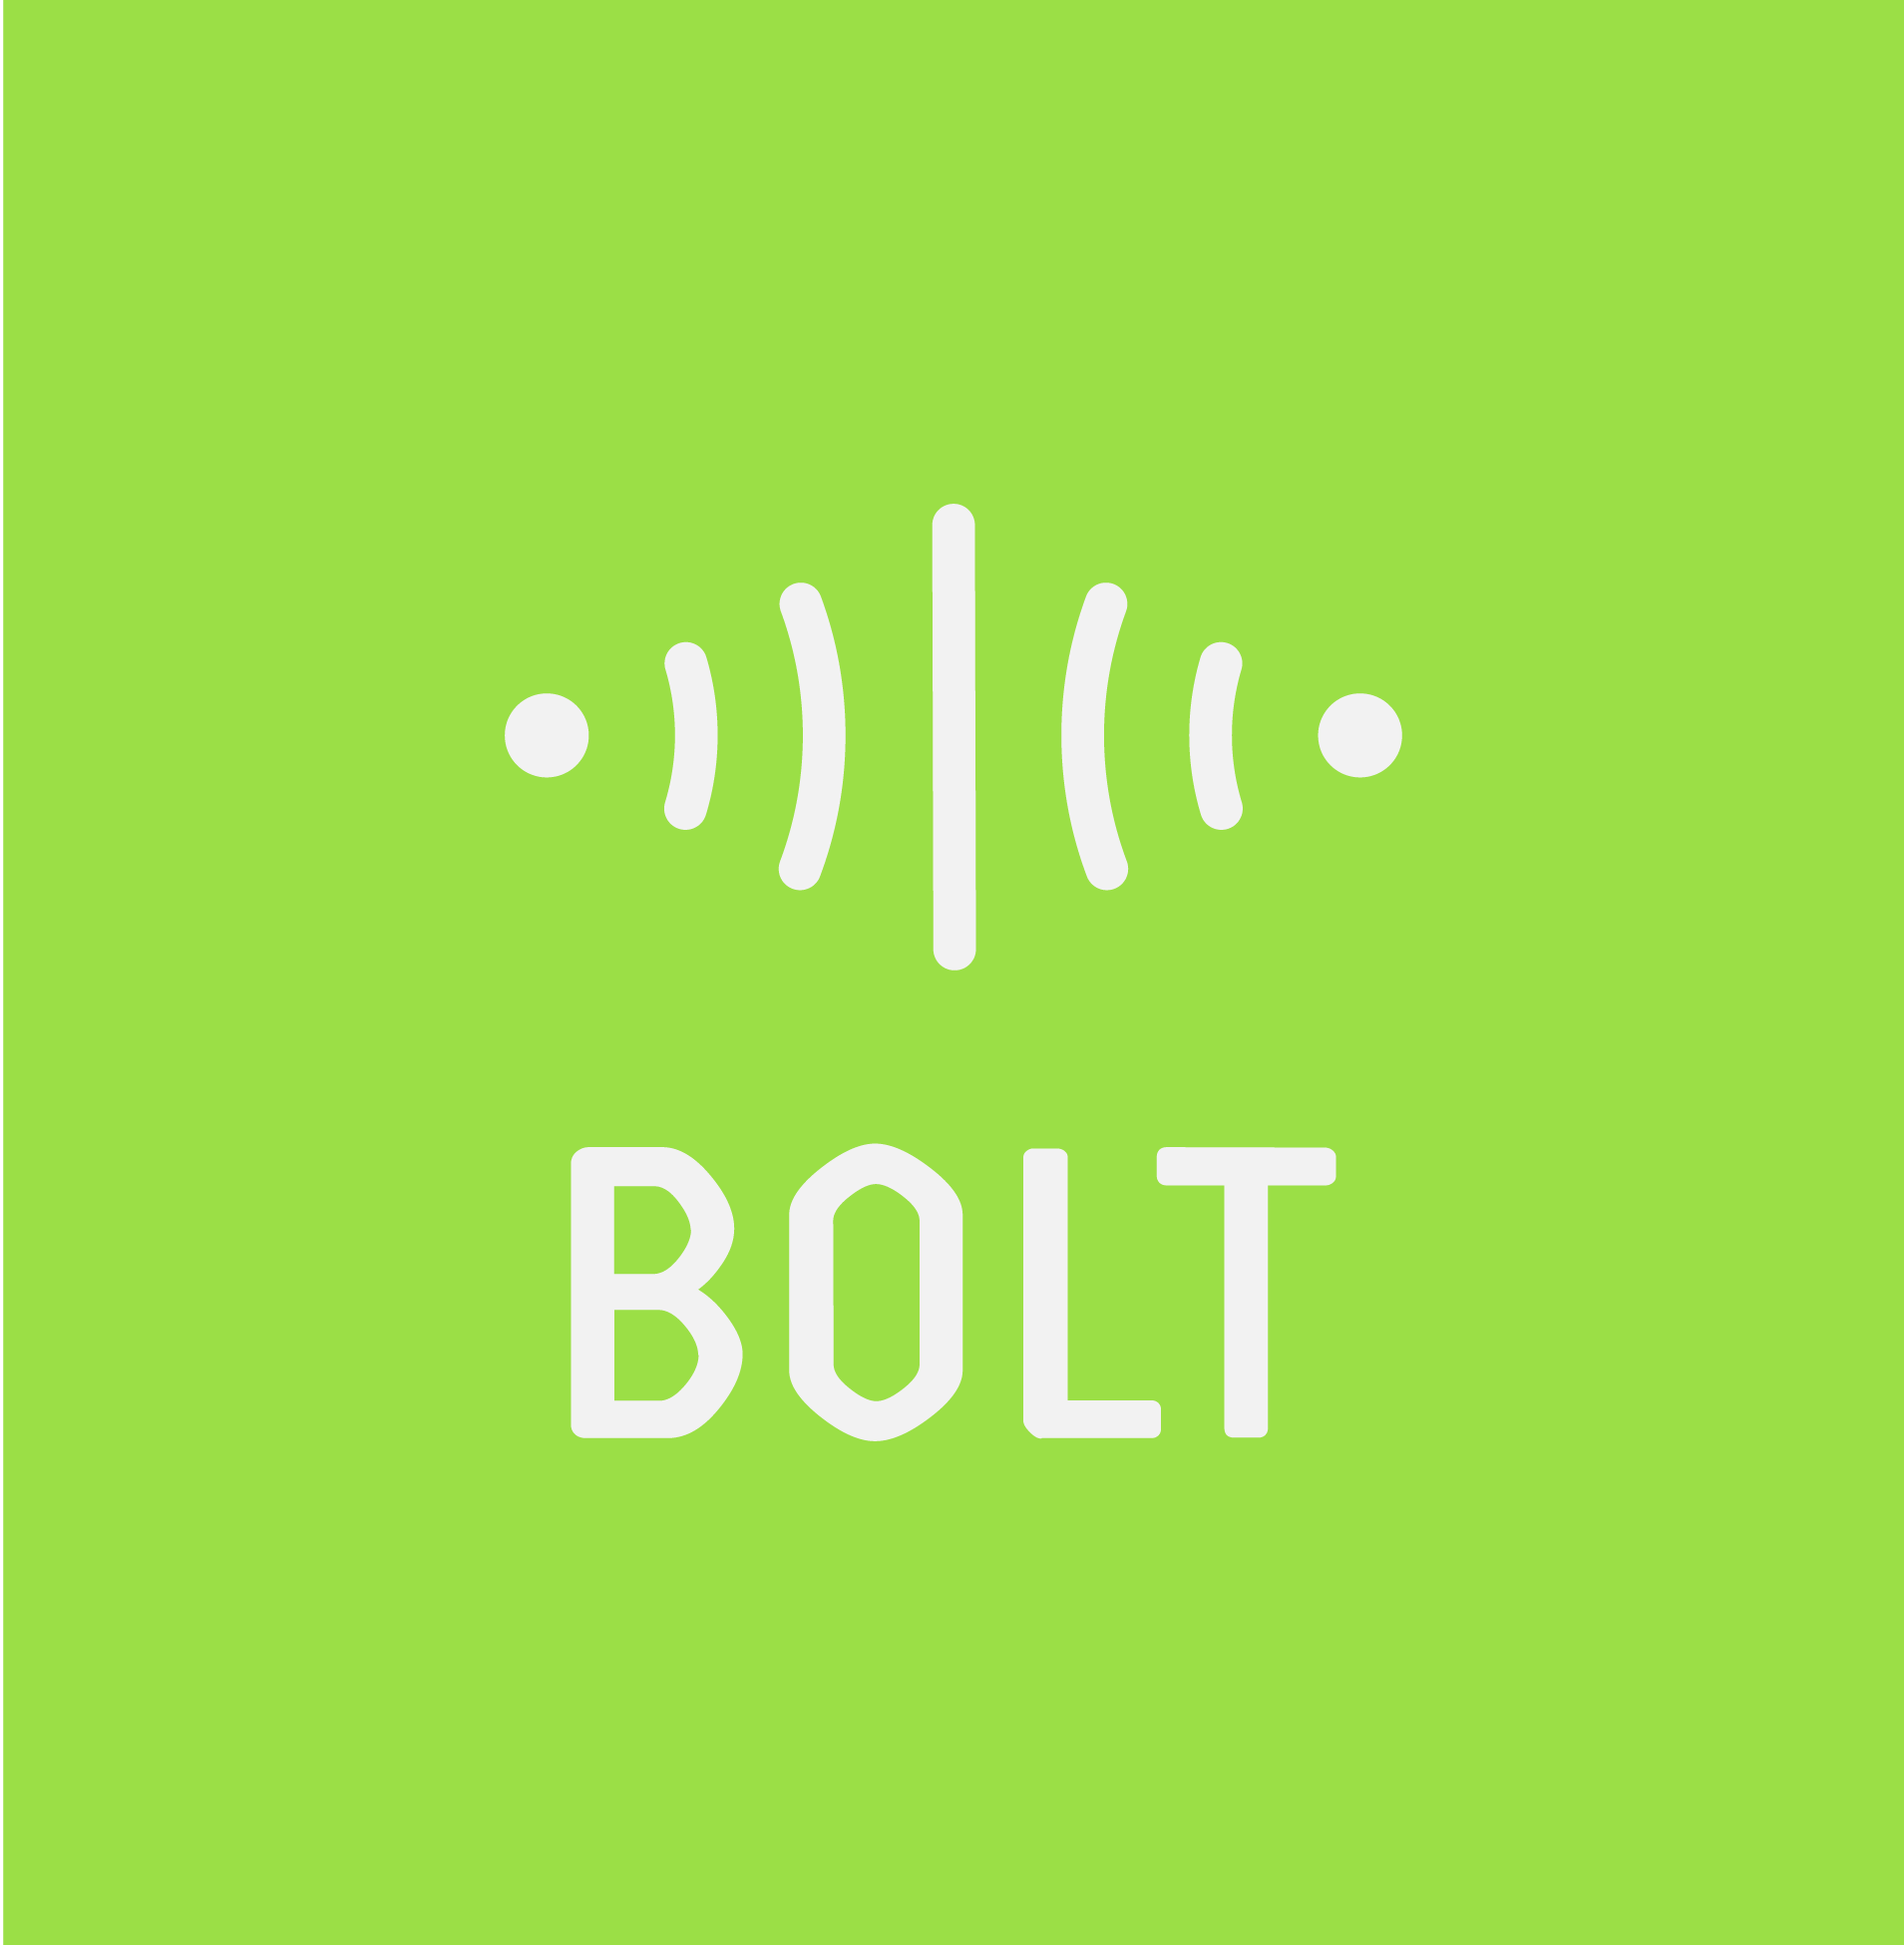 Bolt iot final logo  17 nrxf7bbal8